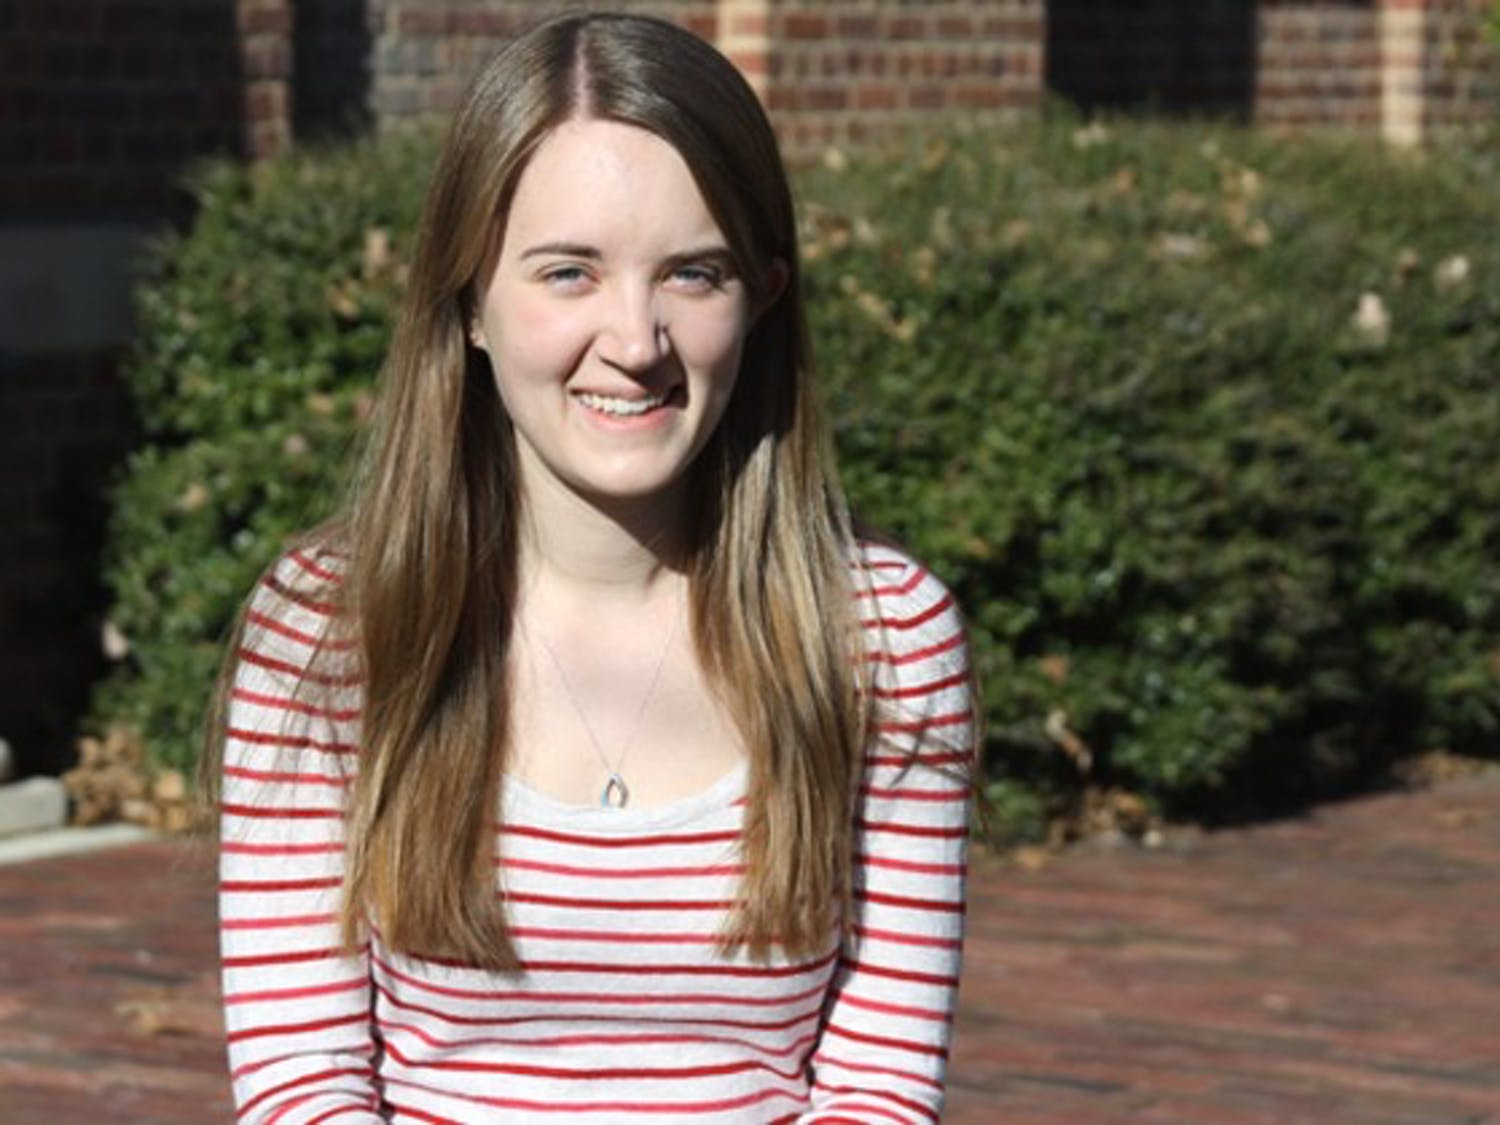 Junior Virginia Sparks was studying abroad in Cairo when the protests began, but was able to return in time to take classes this semester at UNC. She is an Asian studies major with a concentration in Arab culture.